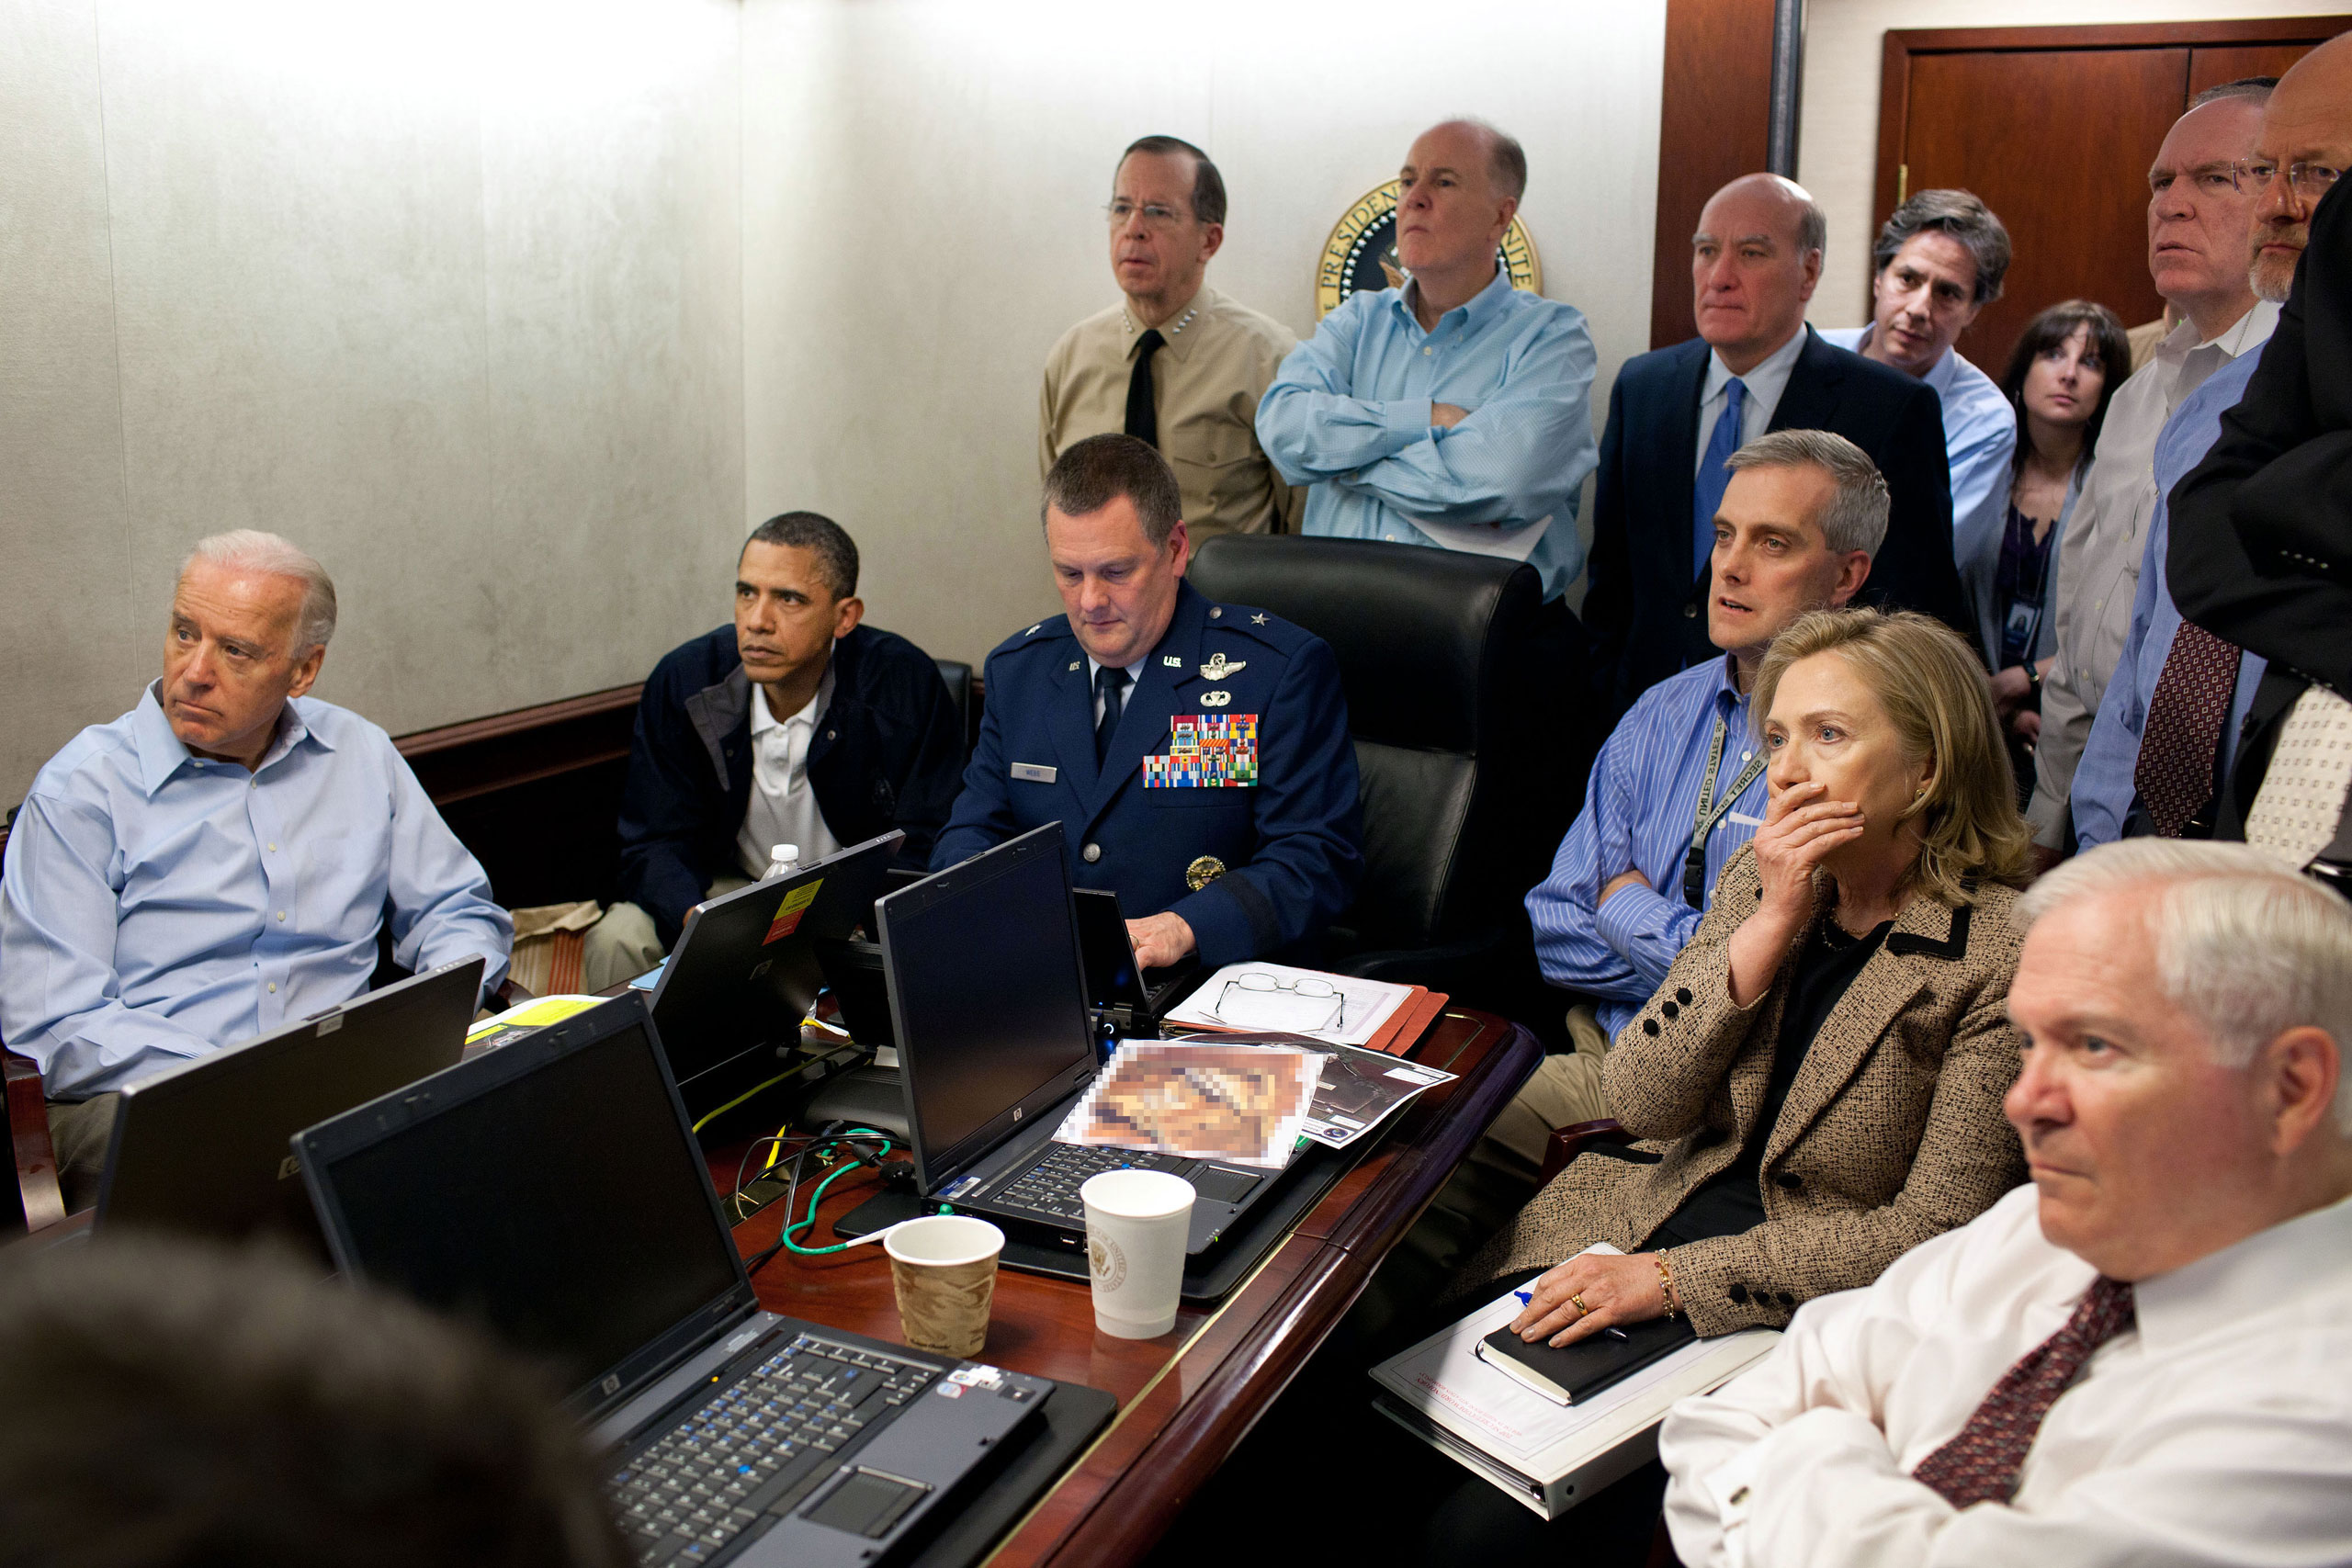 U.S. President Barack Obama, Vice President Joe Biden, Secretary of State Hillary Clinton and members of the national security team receive an update on the mission against Osama bin Laden in the Situation Room of the White House on May 1, 2011, in Washington.